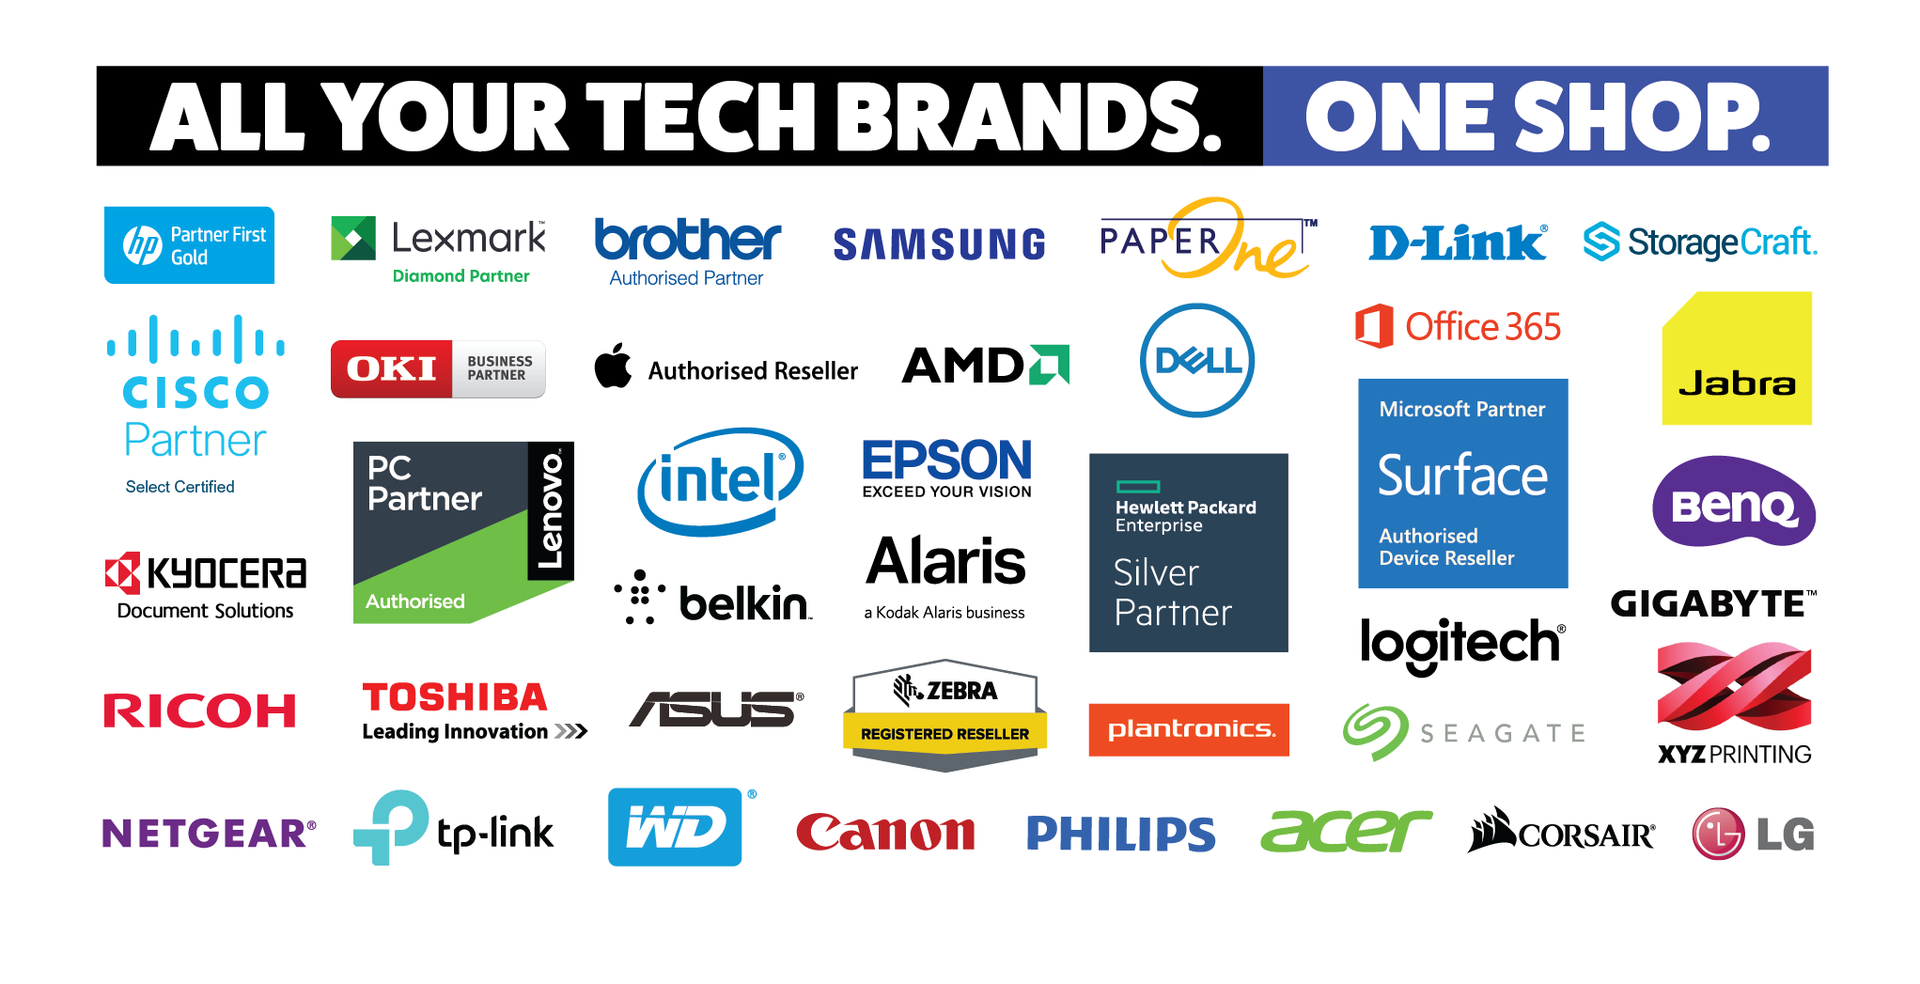 All your tech brands under one shop